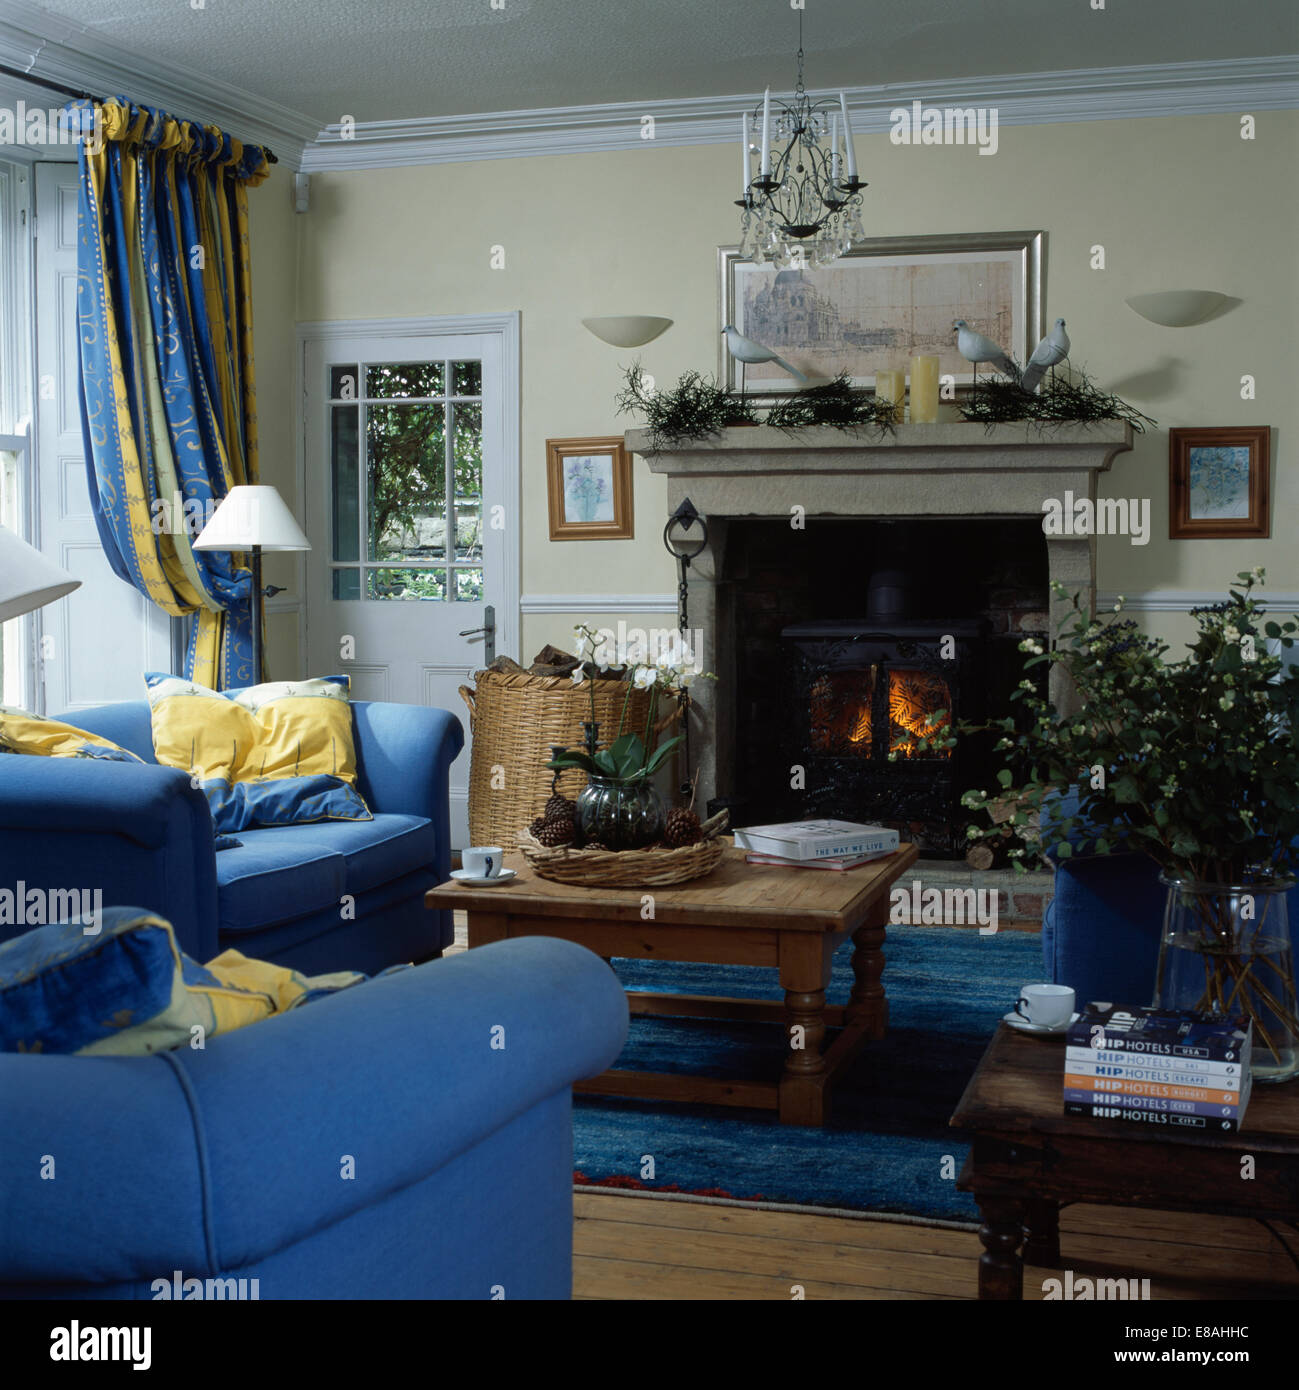 country living rooms with fireplaces sectional room sets sale blue sofas in wood burning stove stone fireplace